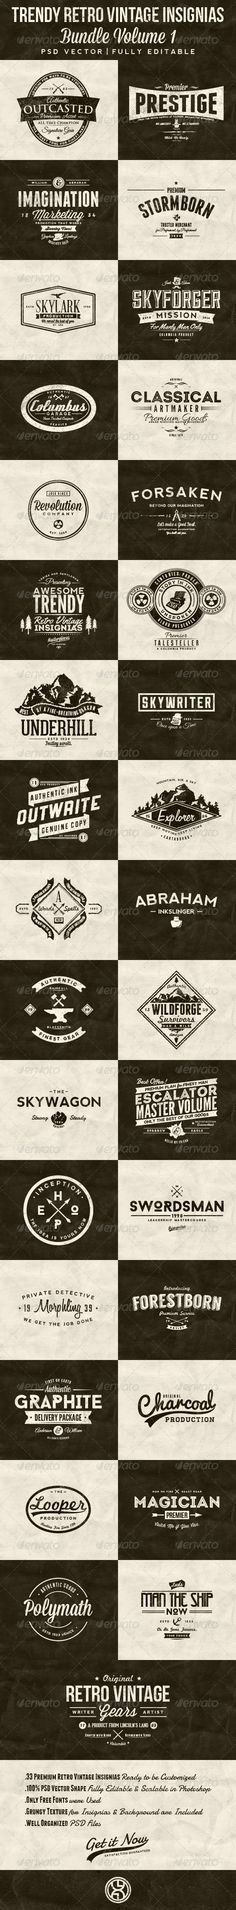 33 Trendy Retro Vintage Insignias Bundle Template | Buy and Download: http://graphicriver.net/item/33-trendy-retro-vintage-insignias-bundle-volume-1/7522214?WT.ac=category_thumb&WT.z_author=mining&ref=ksioks